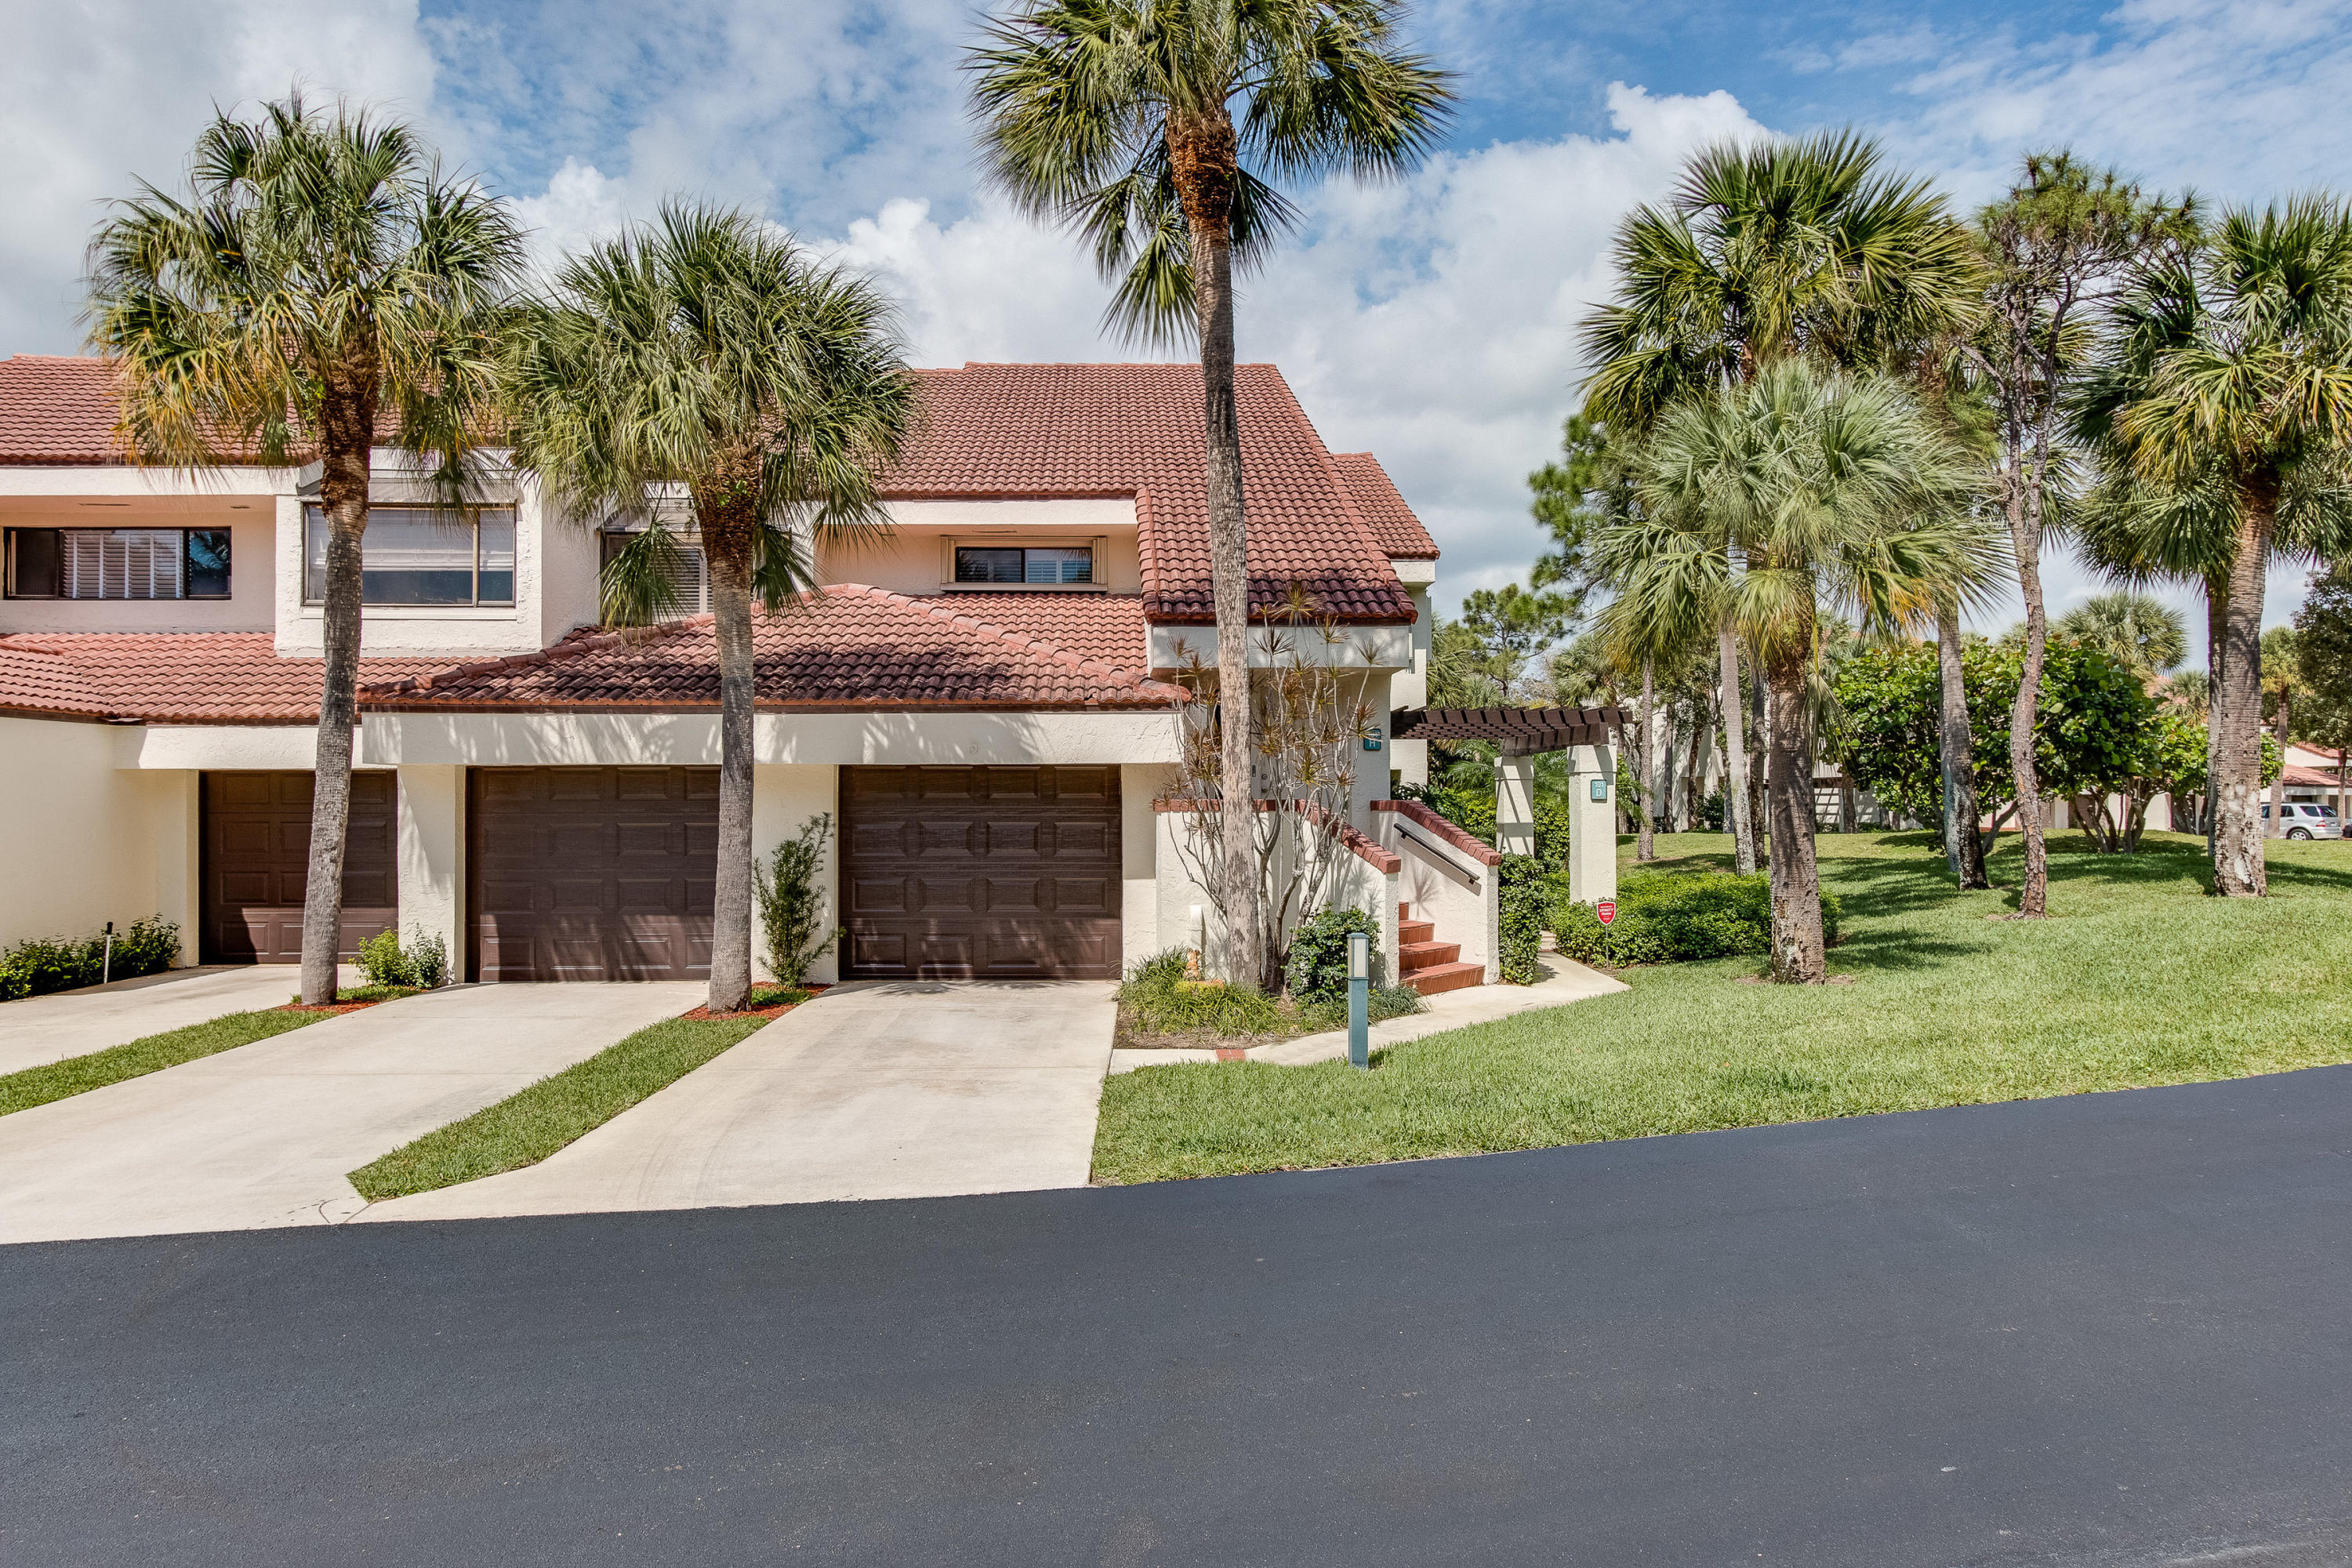 Home for sale in Sea Oats Juno Beach Florida